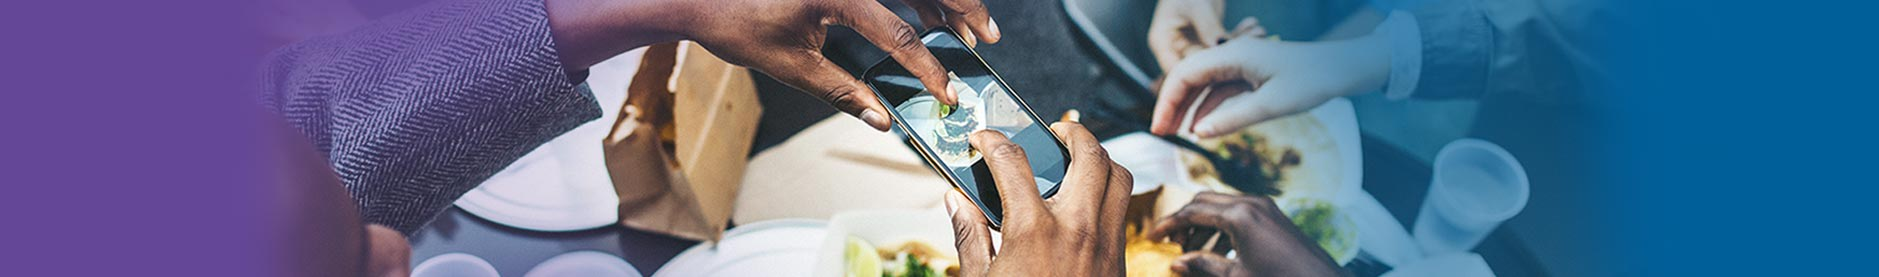 Man taking picture of food with smart phone